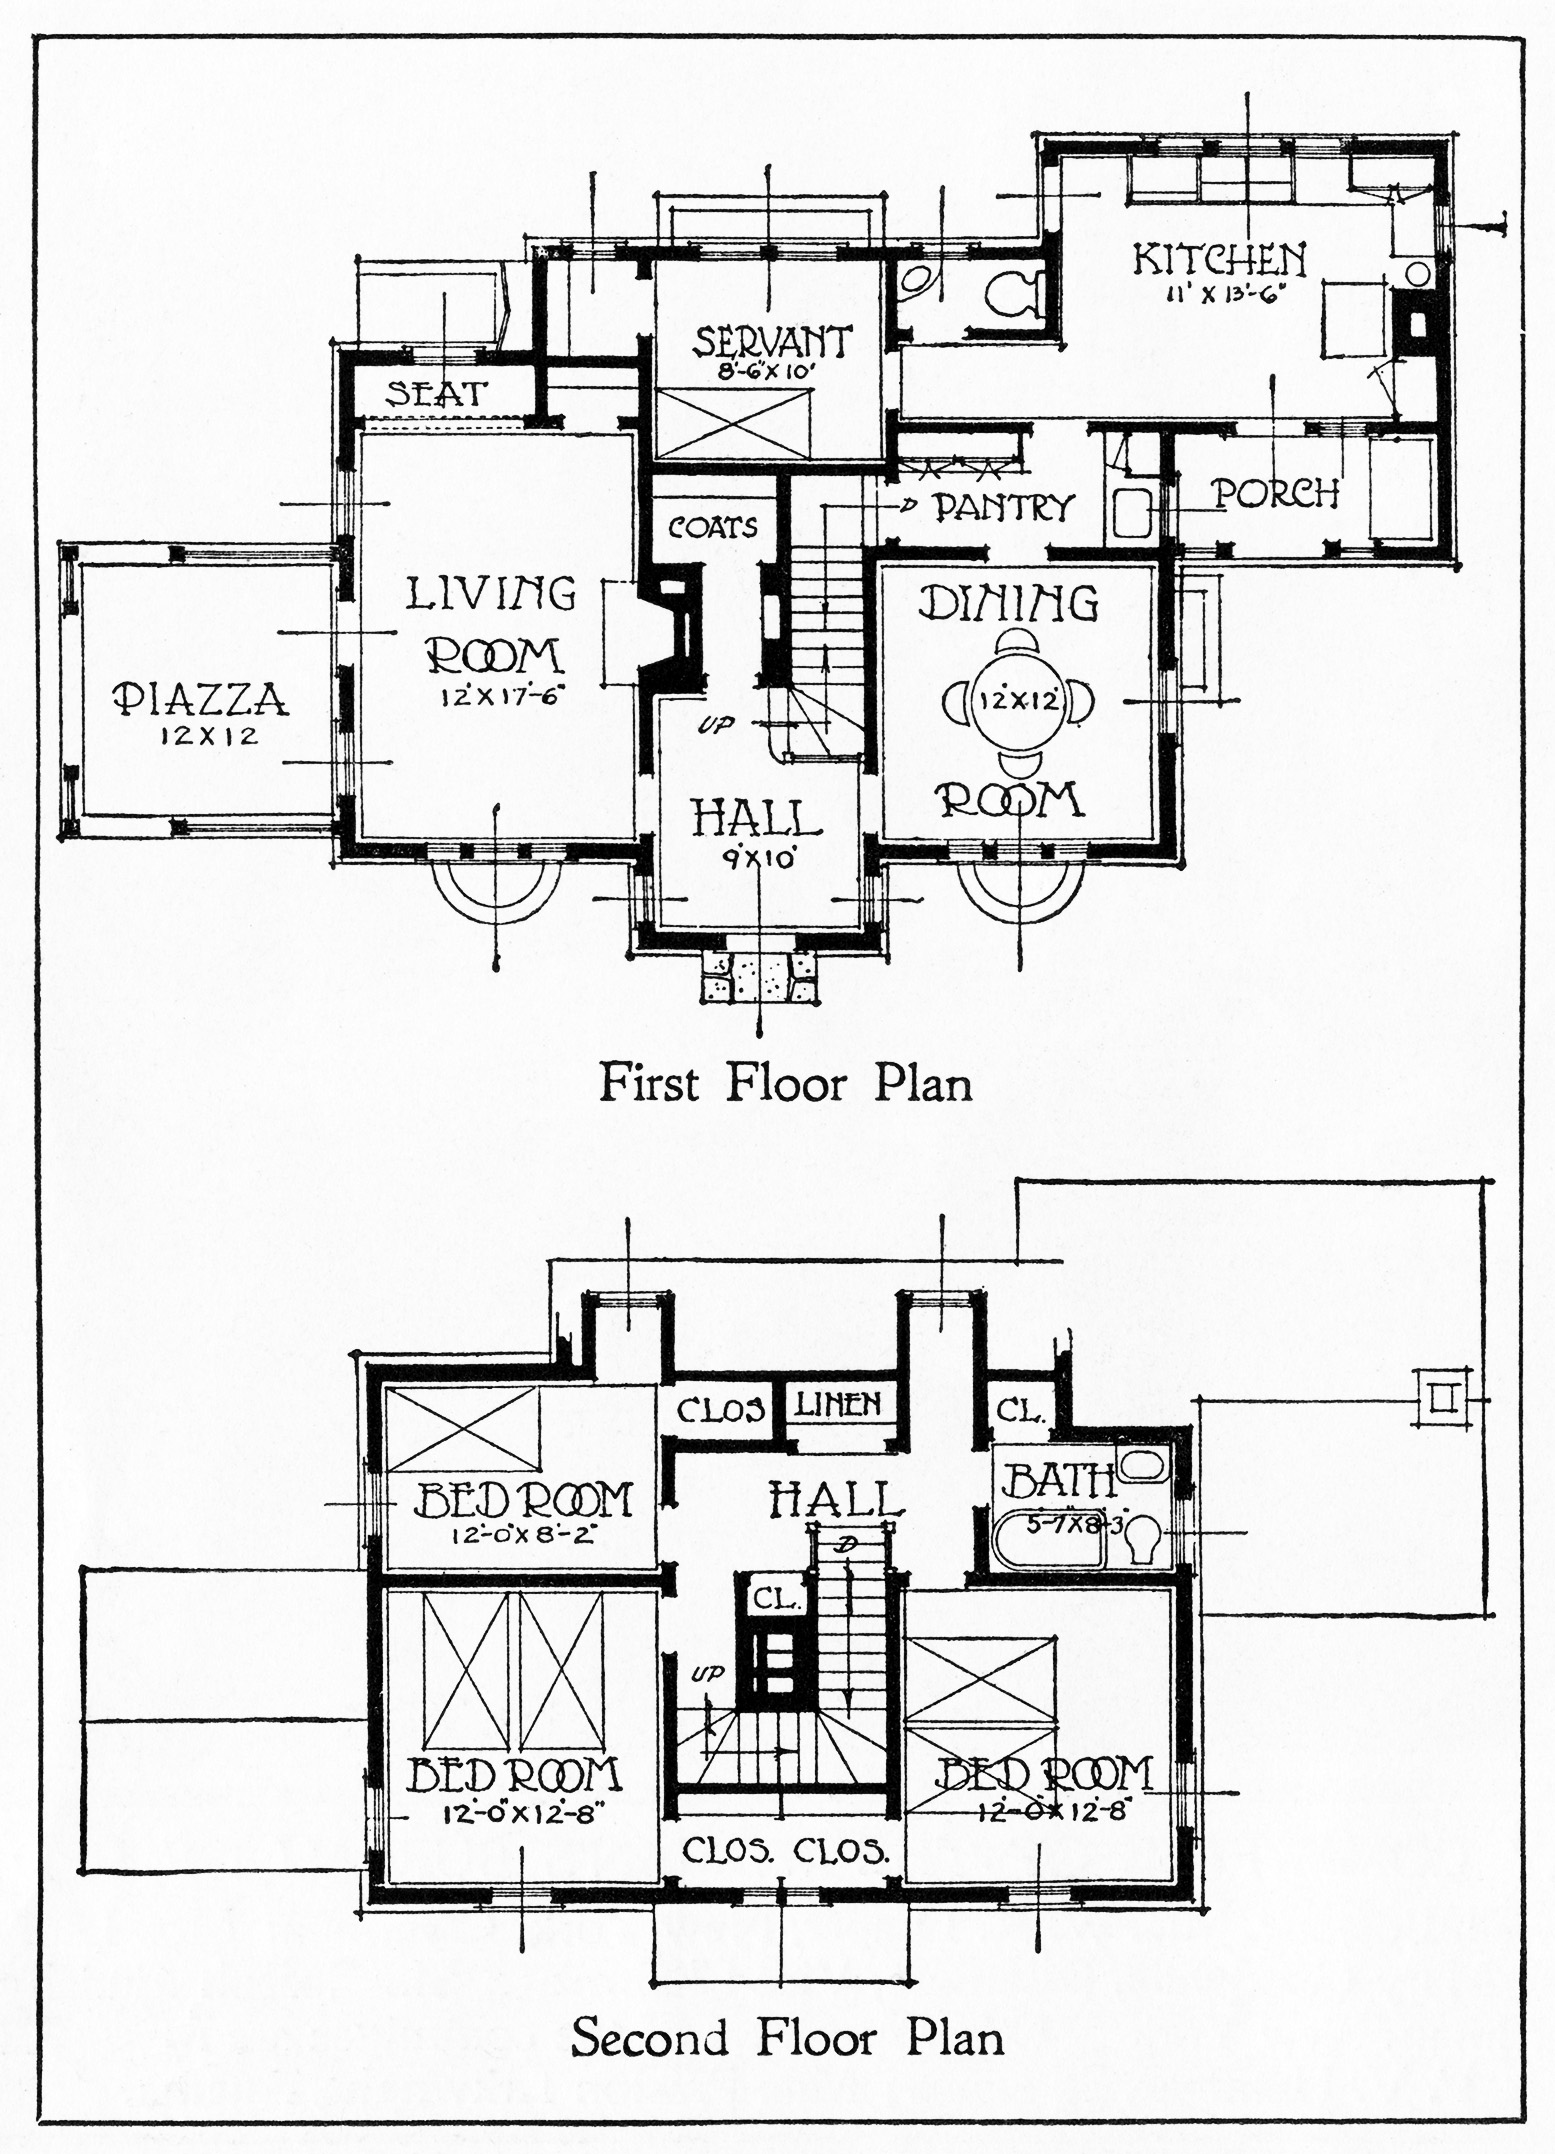 1917 House Illustration And Floor Plans Old Design Shop Blog